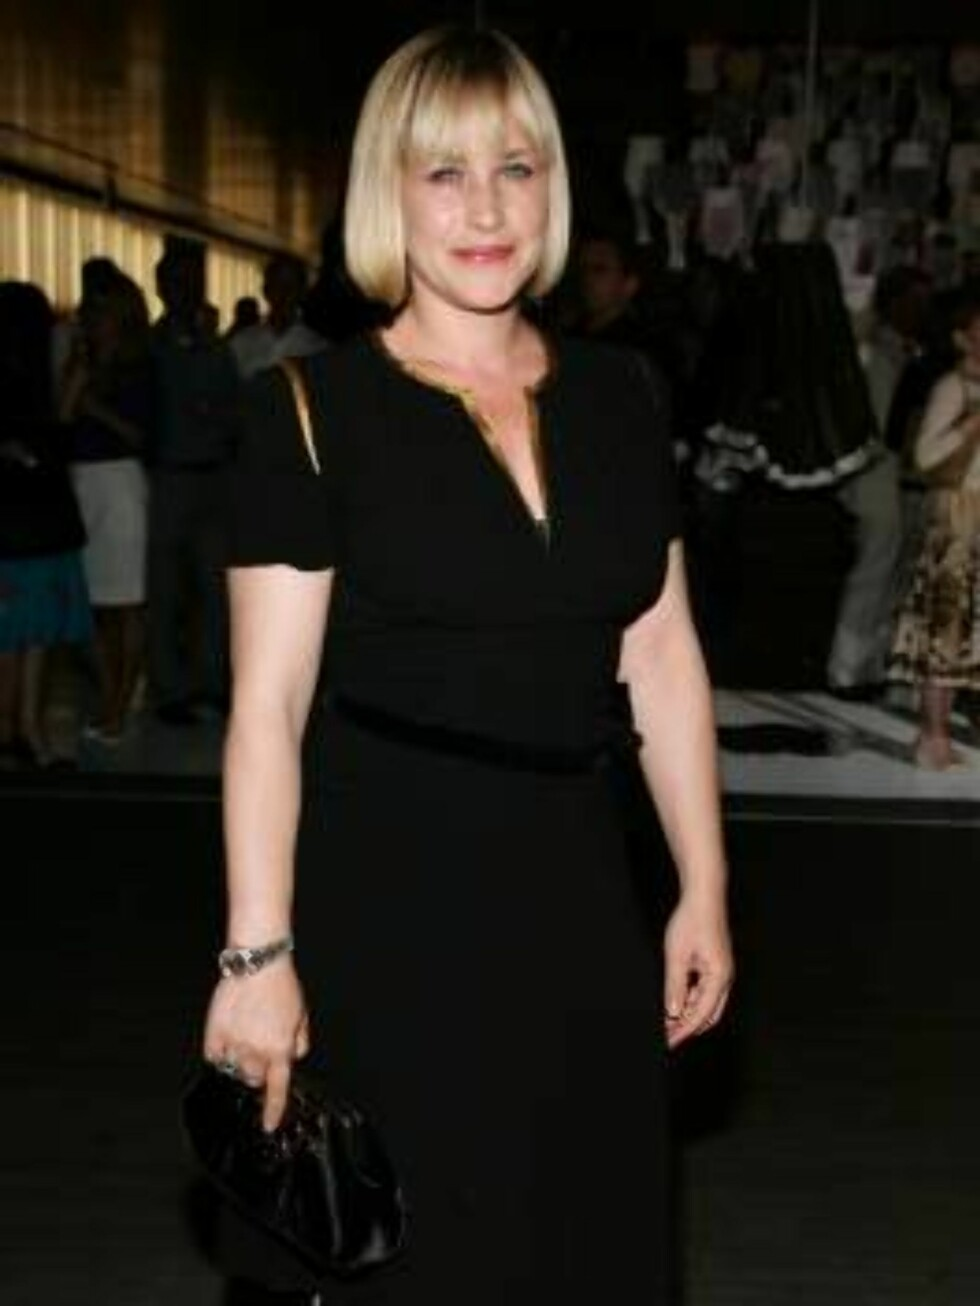 "<strong>BEVERLY HILLS, CA - JULY 13:</strong>  Actress Patricia Arquette arrives at the opening of ""Waist Down - Skirts By Miuccia Prada"" held at Prada on July 13, 2006 in Beverly Hills, California.  (Photo by Frazer Harrison/Getty Images) *** Local Caption *** Patricia A Foto: AP/Scanpix"